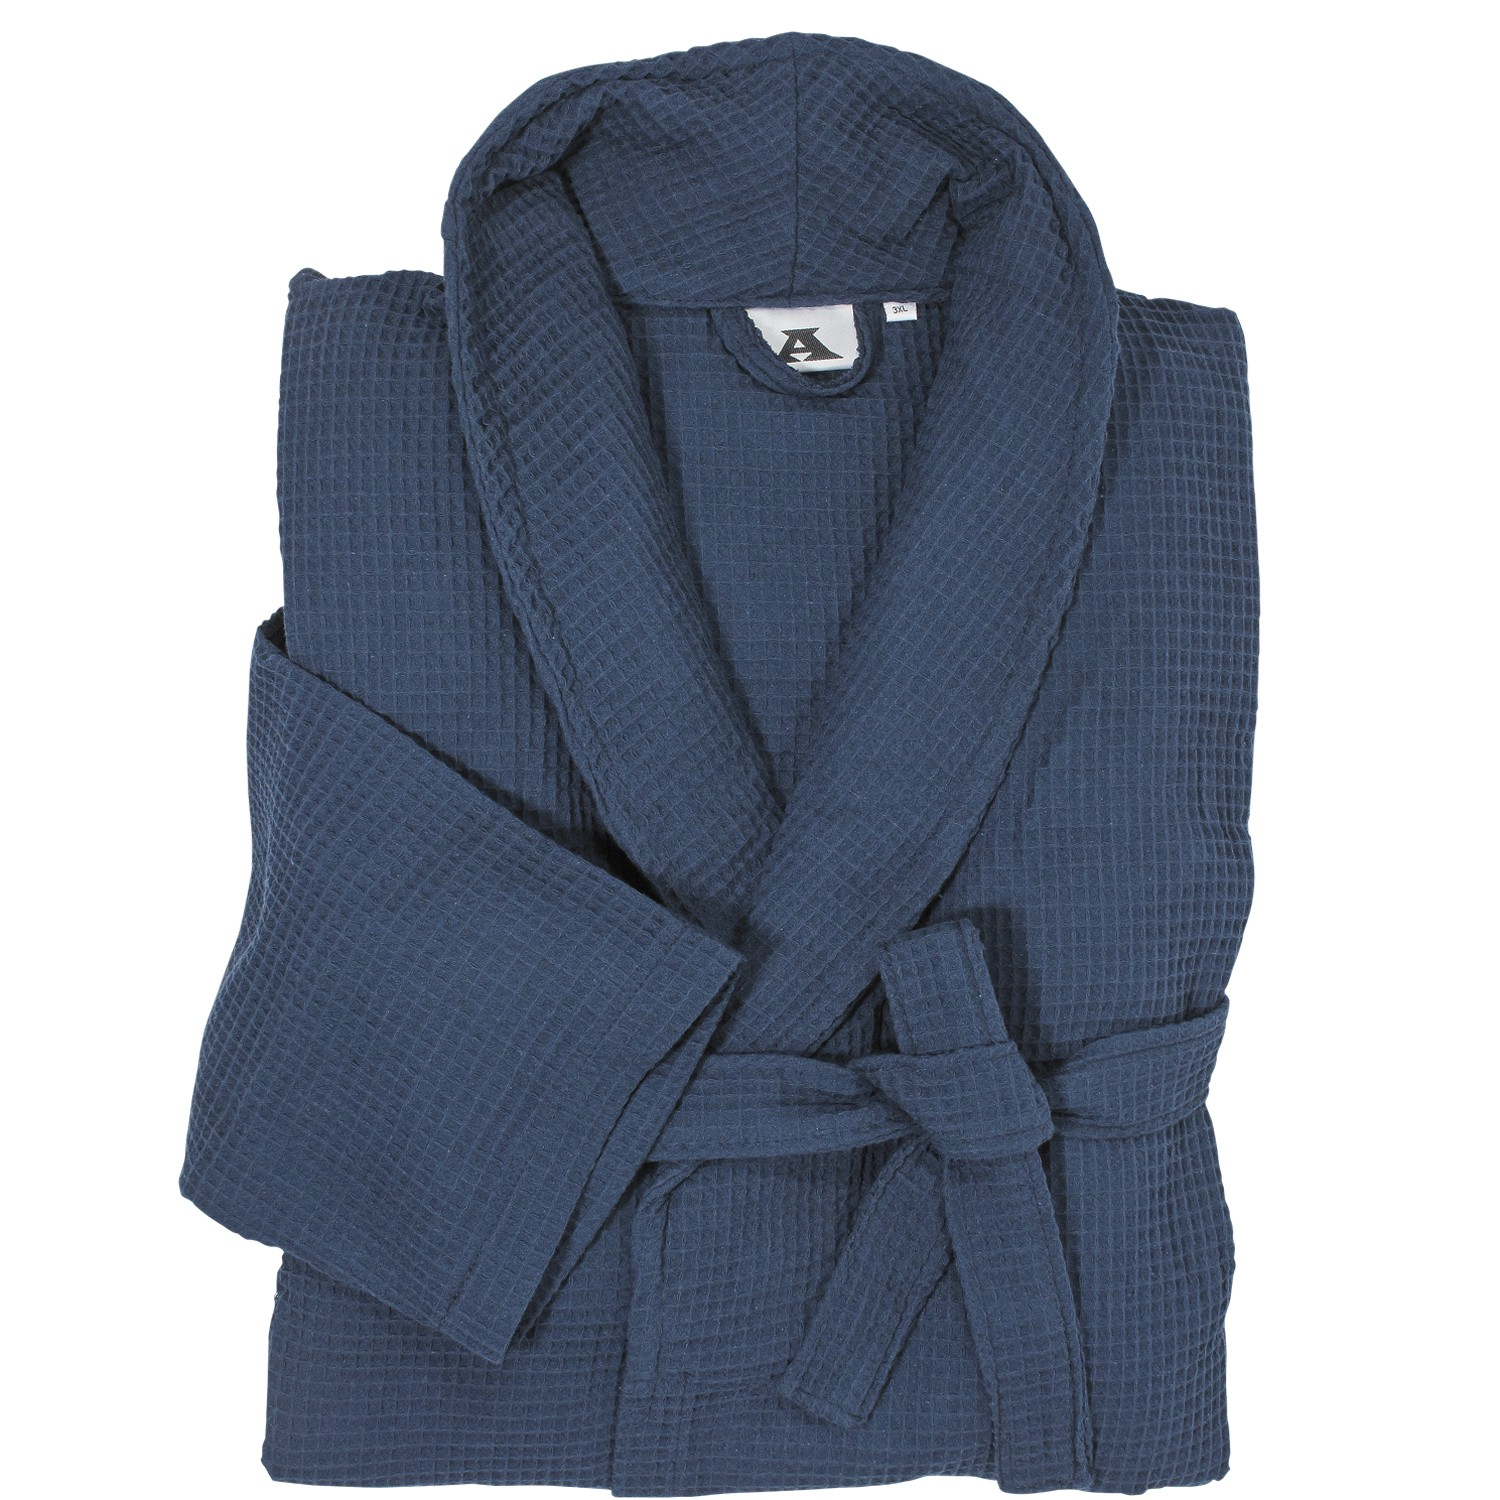 Detail Image to Dressing gown in blue made of waffle pique by Abraxas in large sizes up to 10XL